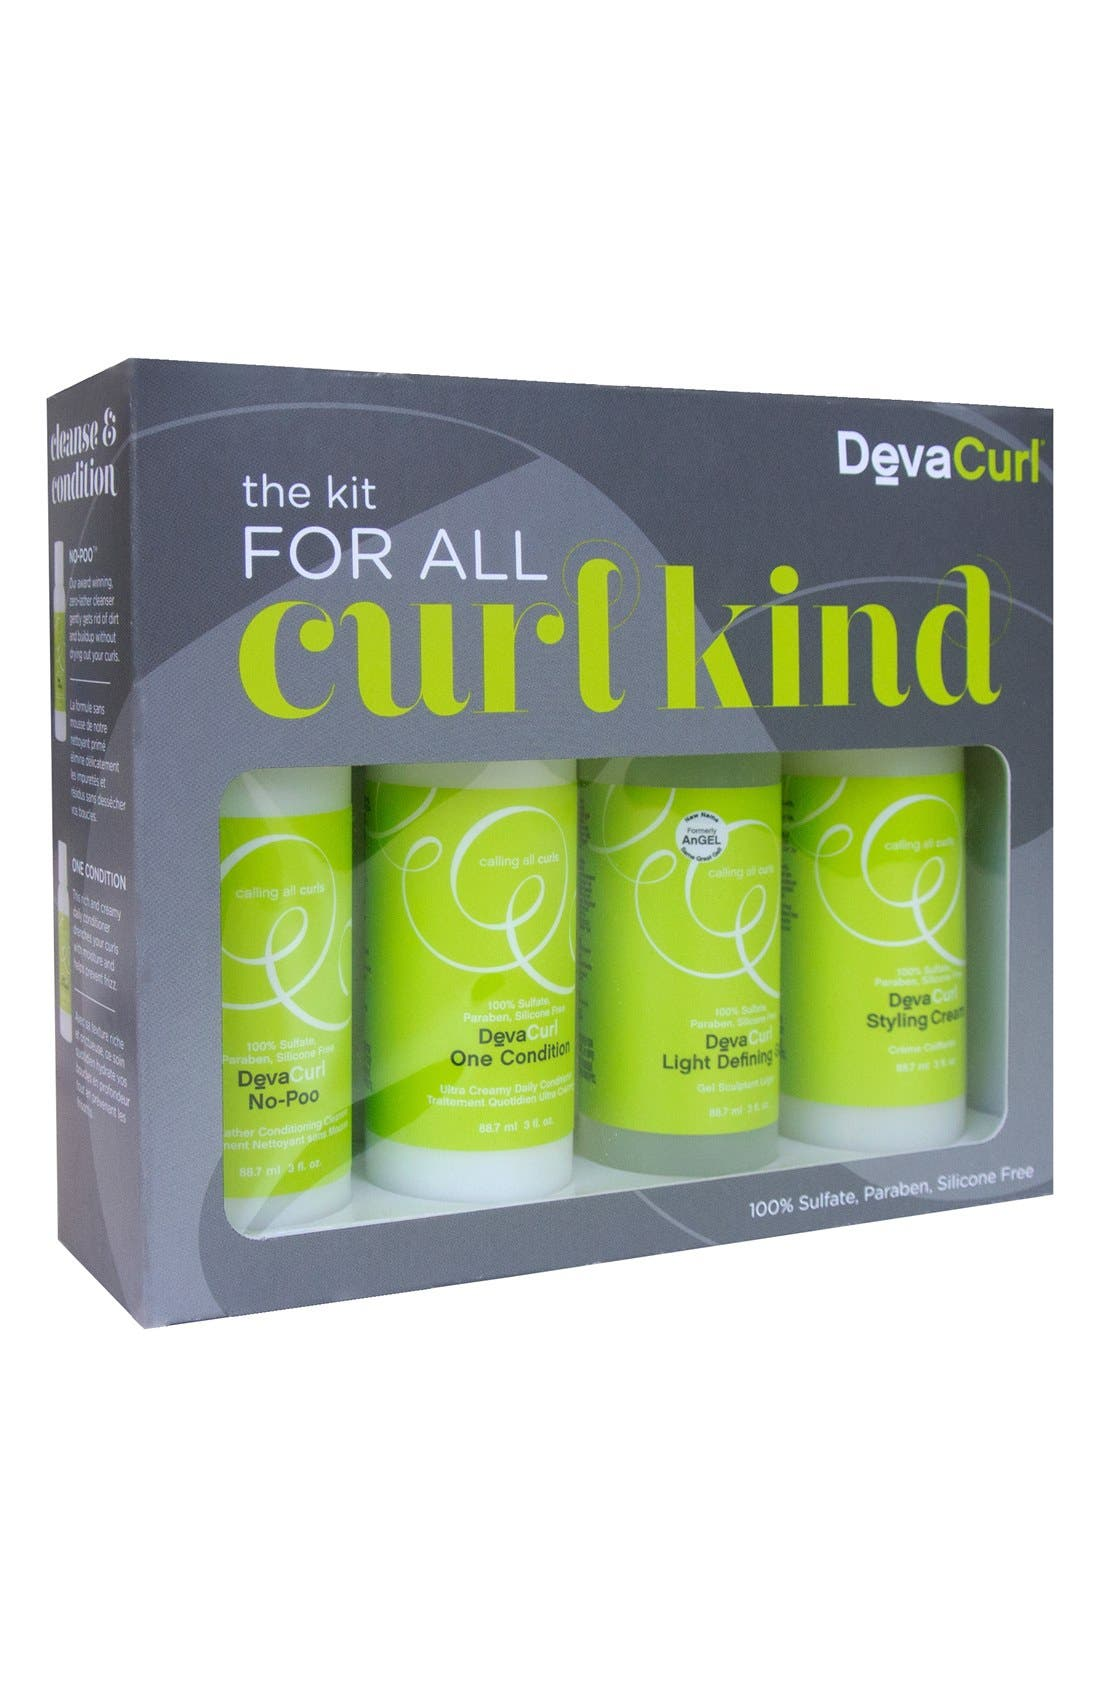 DevaCurl 'The Kit for All Curl Kind' Set ($41 Value)